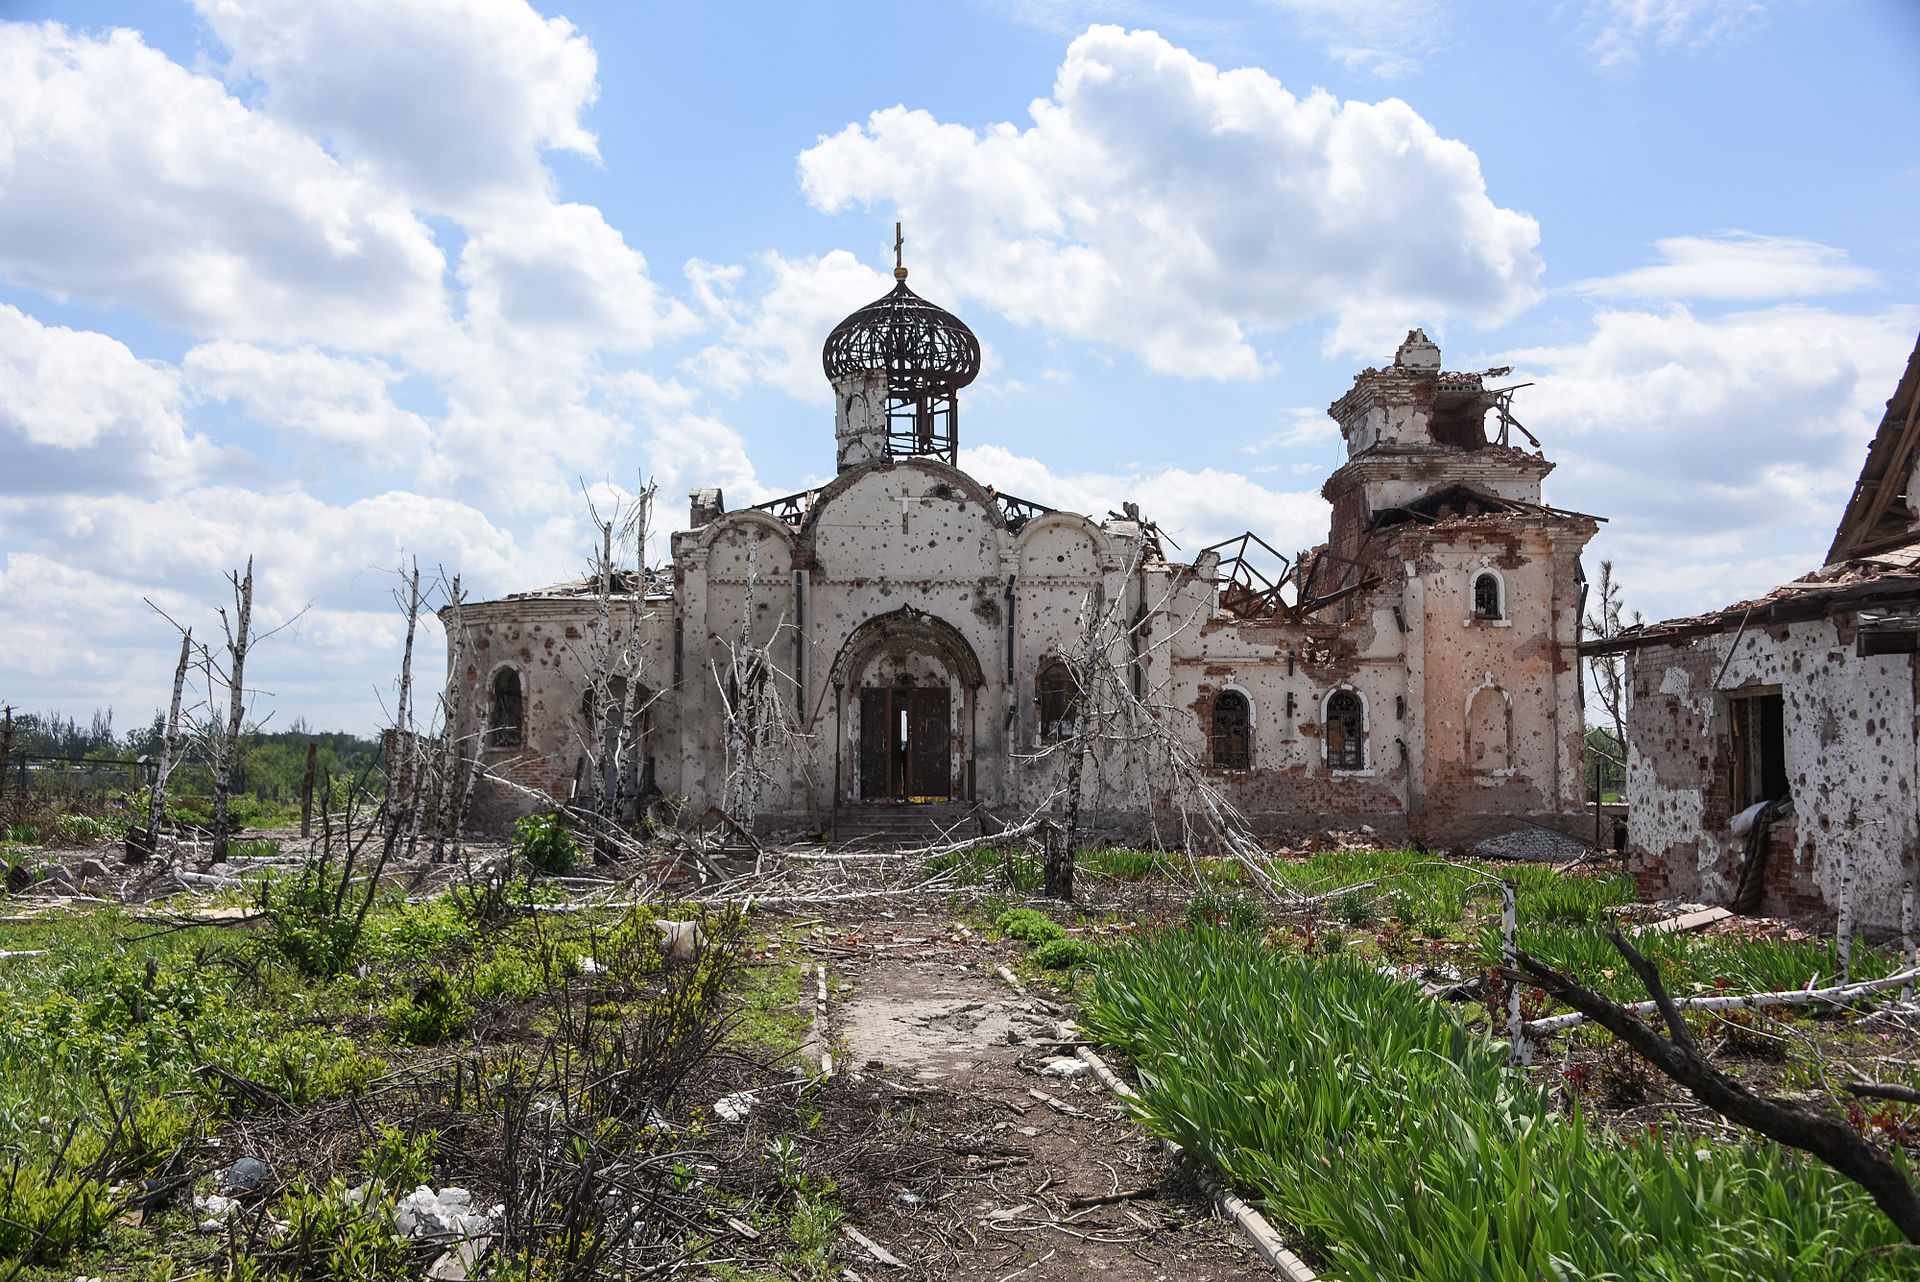 What the war has done to the Iversky monastery. A war of choice triggered by Western intrigues and plots against Russia. (Wiki photo CC)